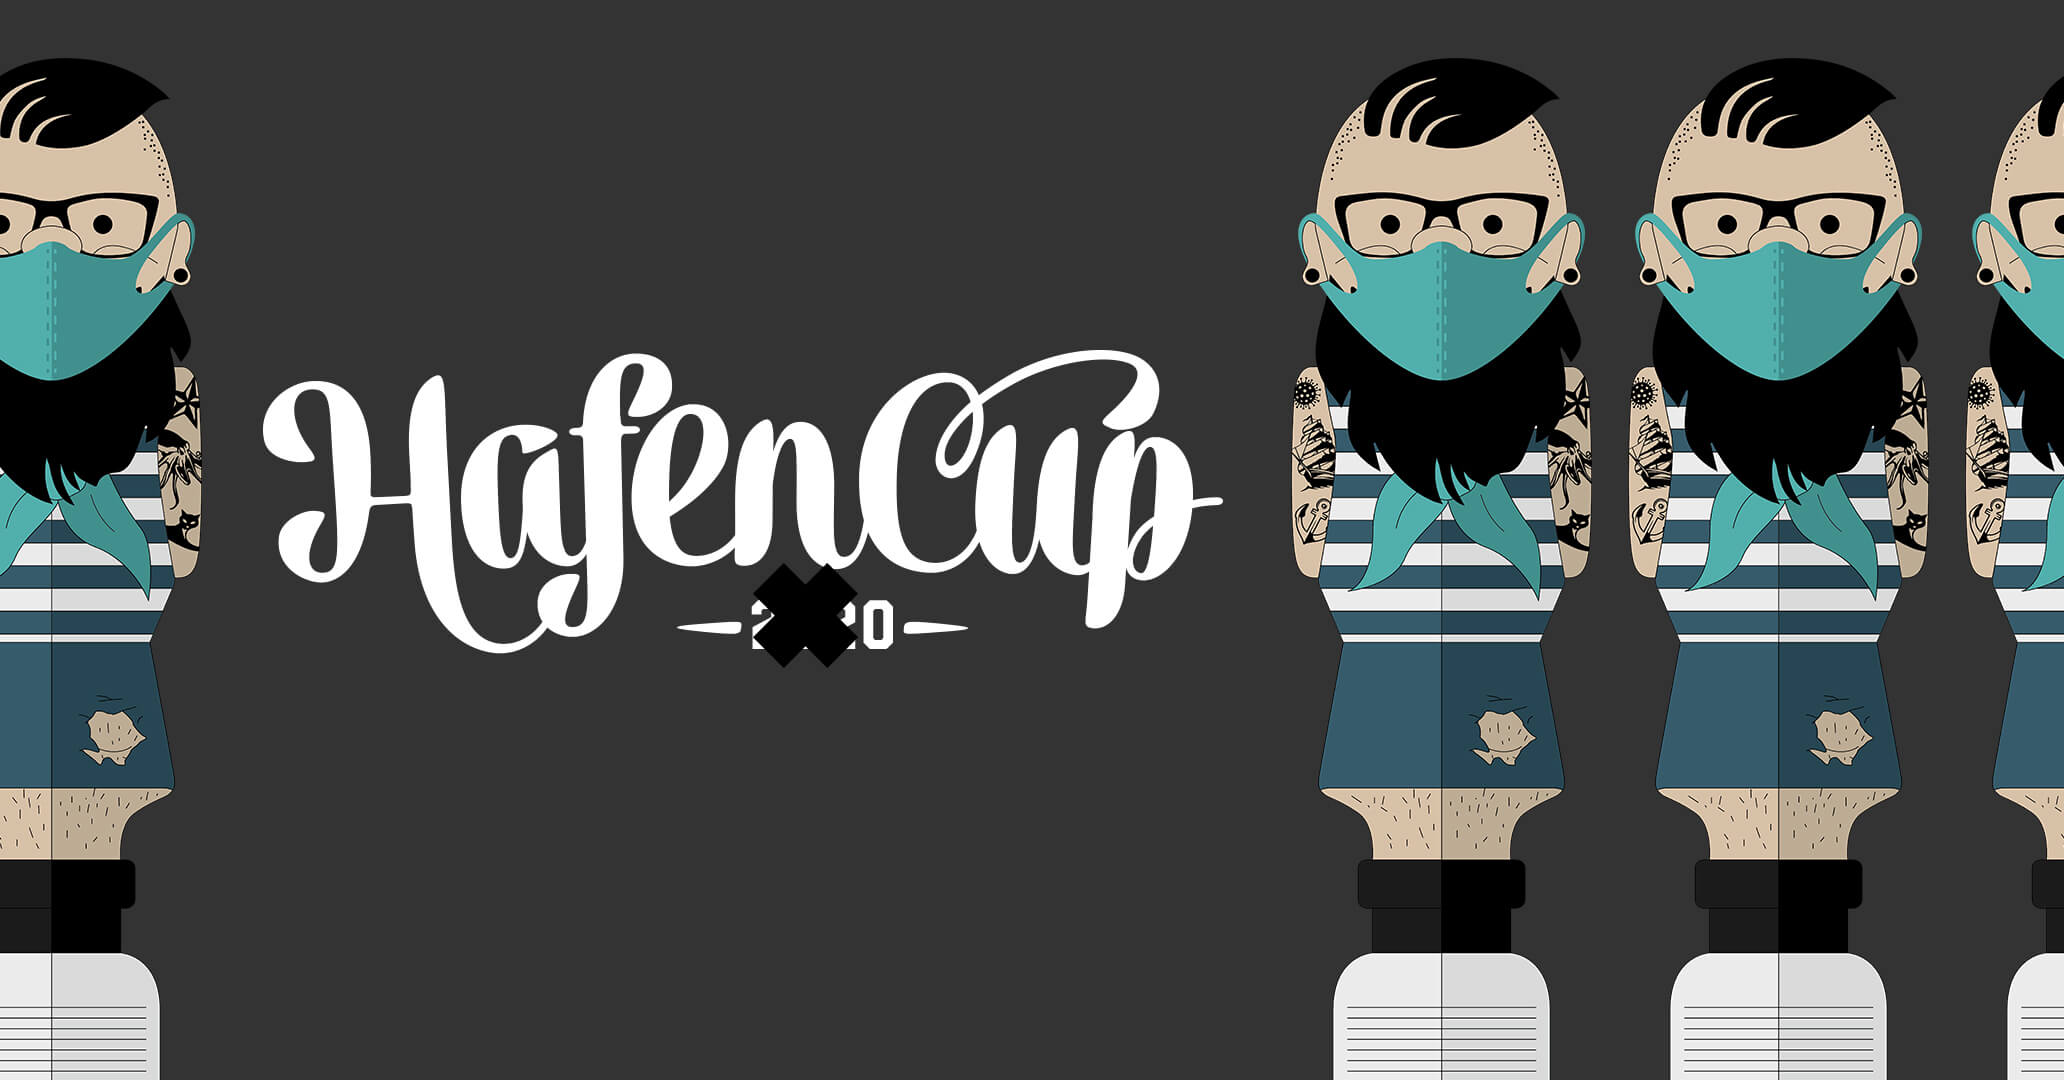 teamElgato News – Absage HafenCup 2020